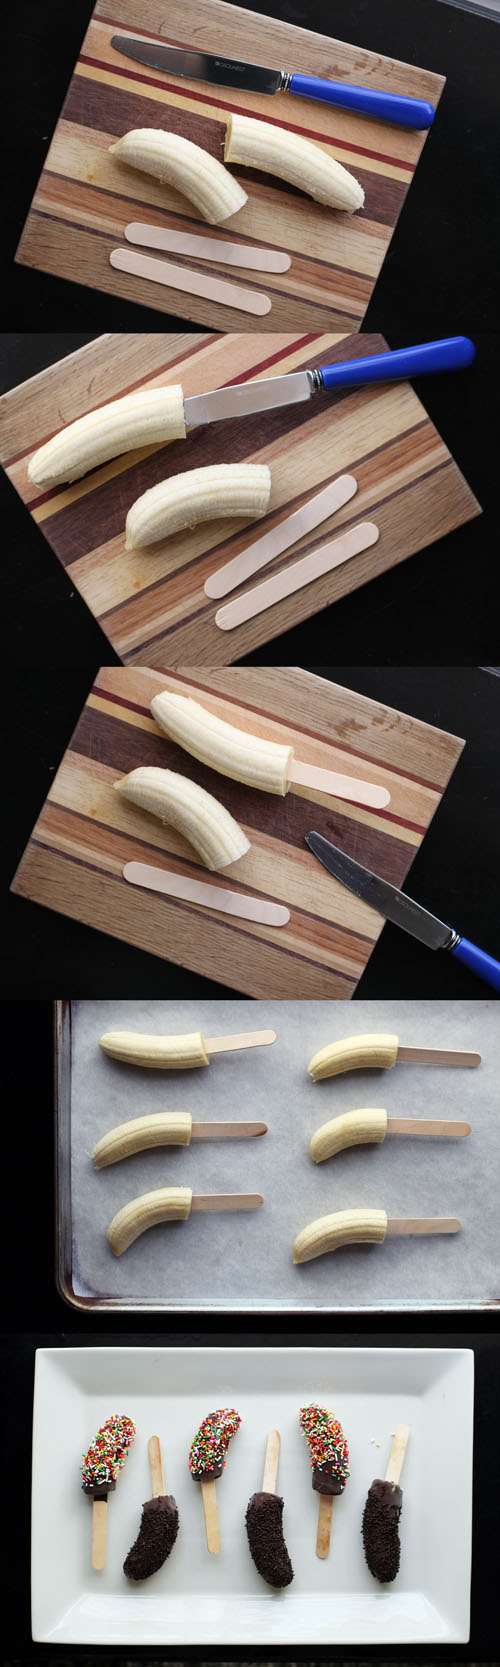 how to eat a frozen banana